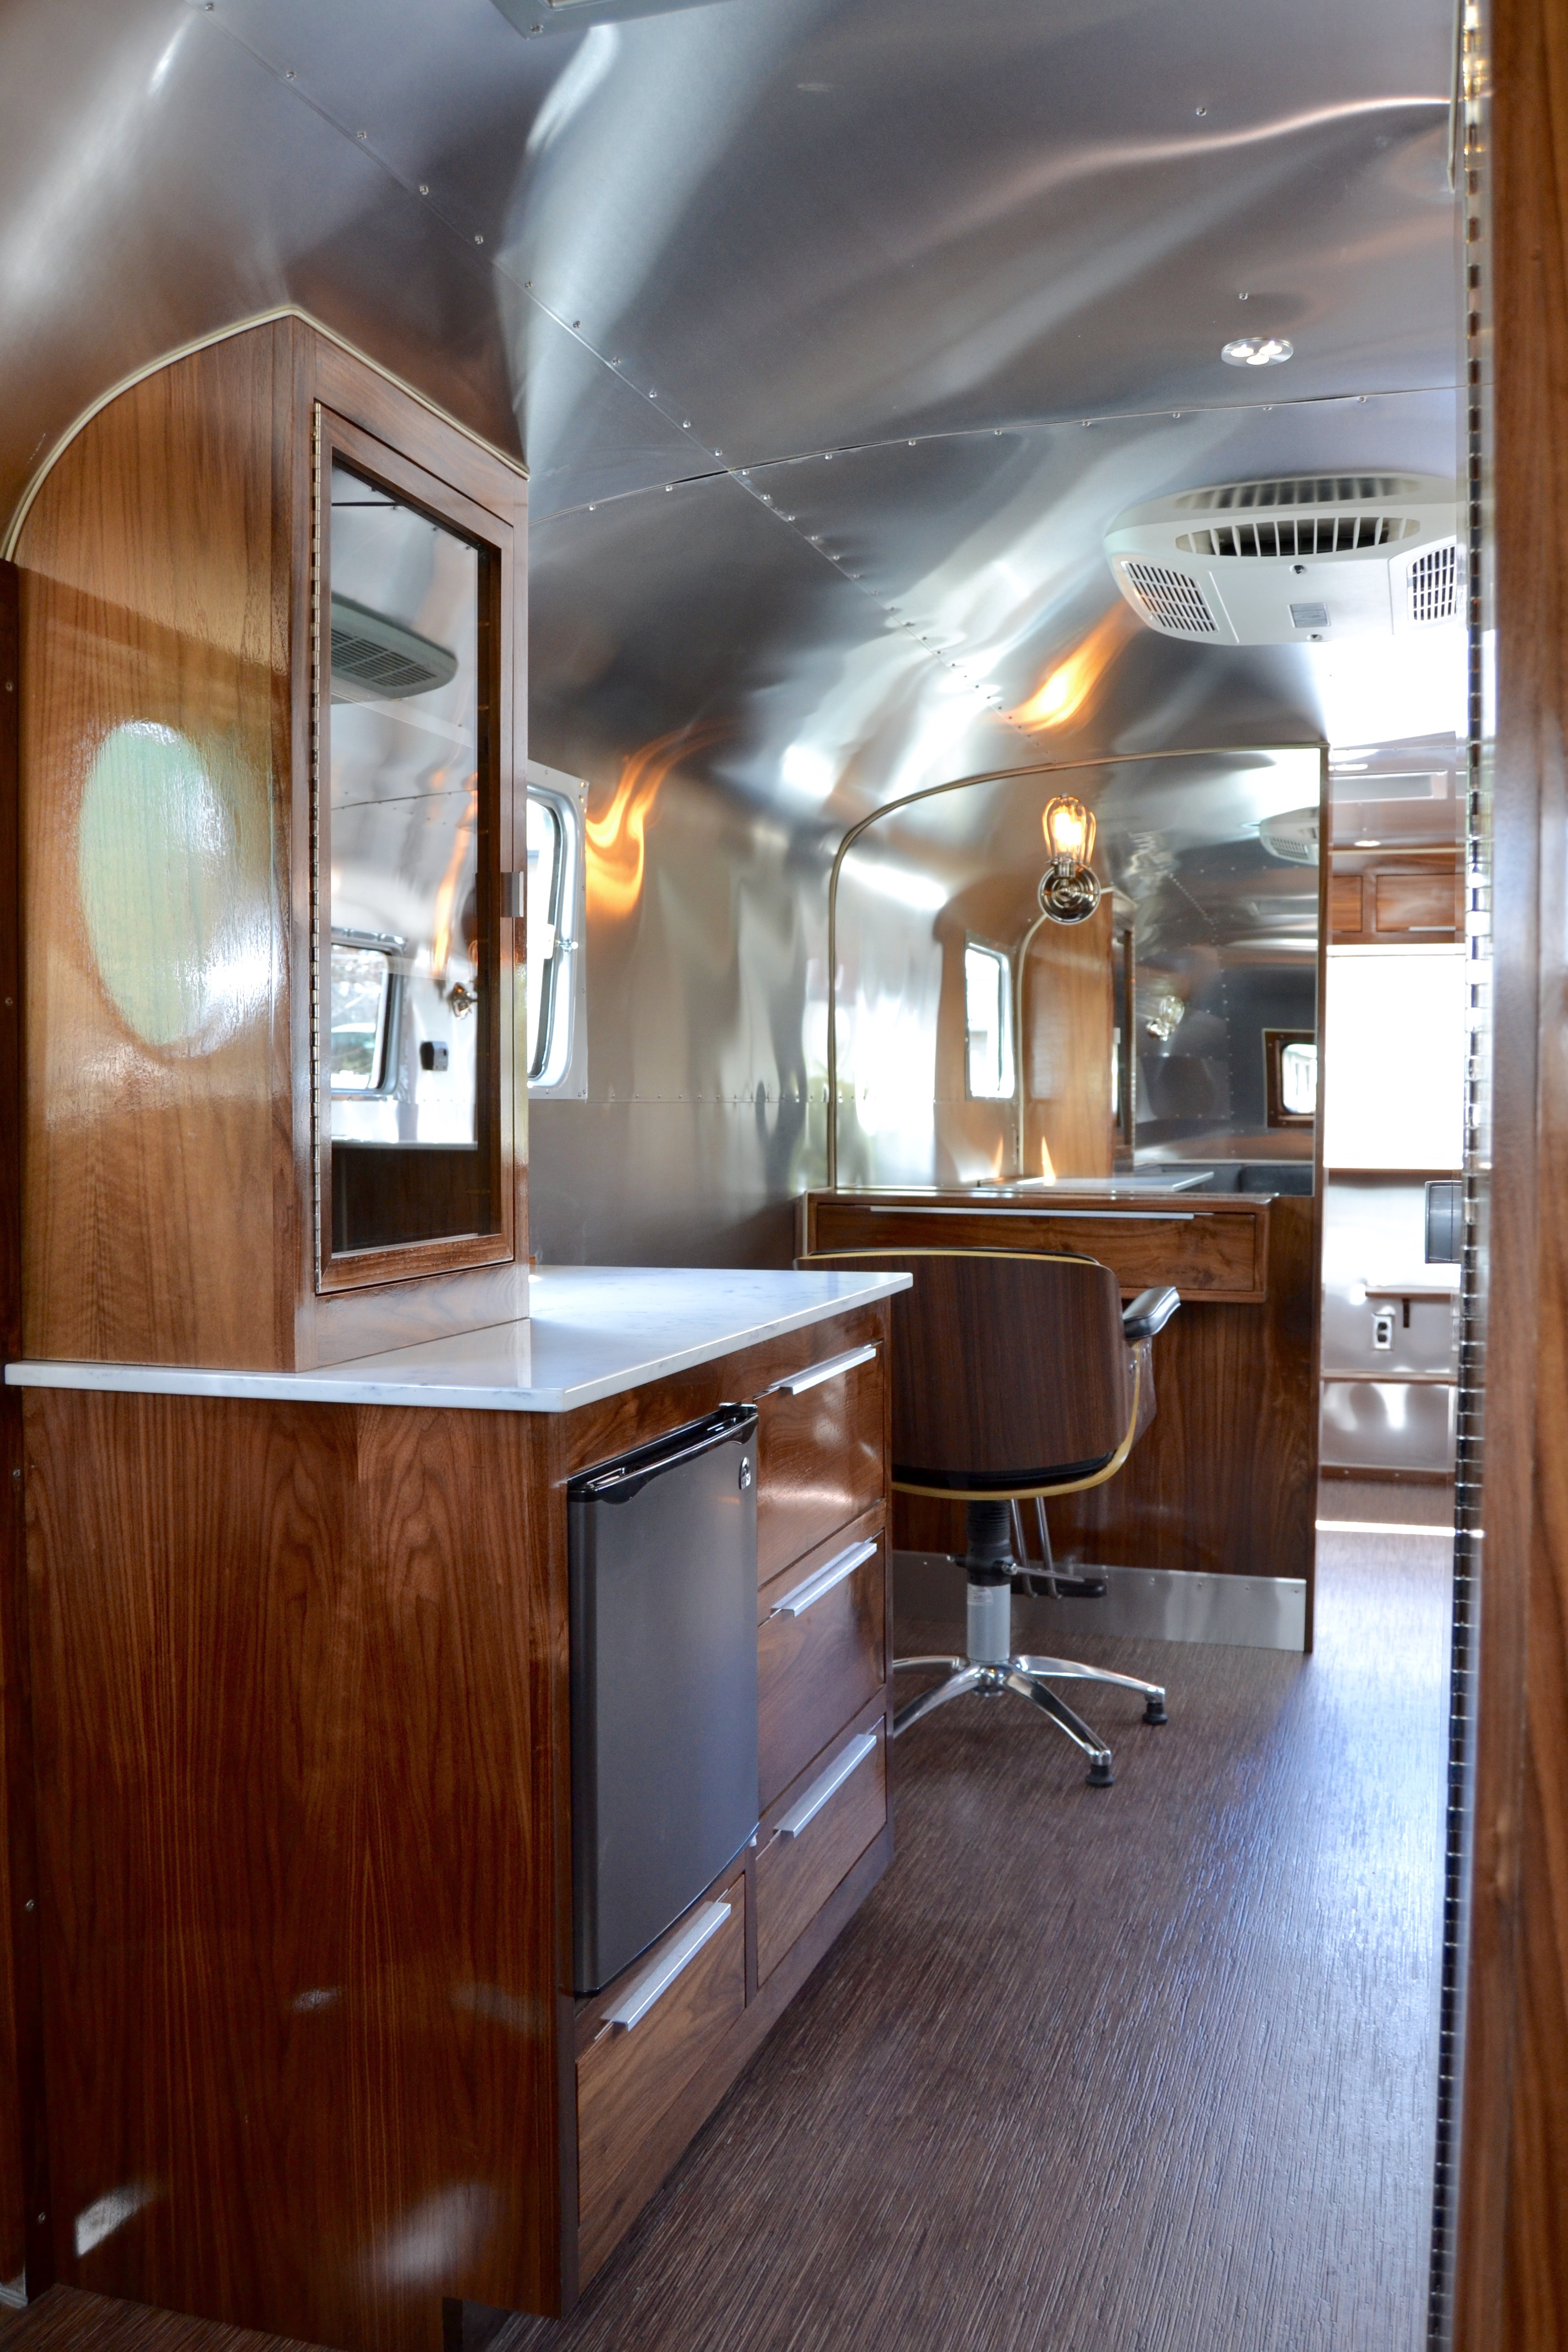 1946 Spartan Manor Mobile Salon